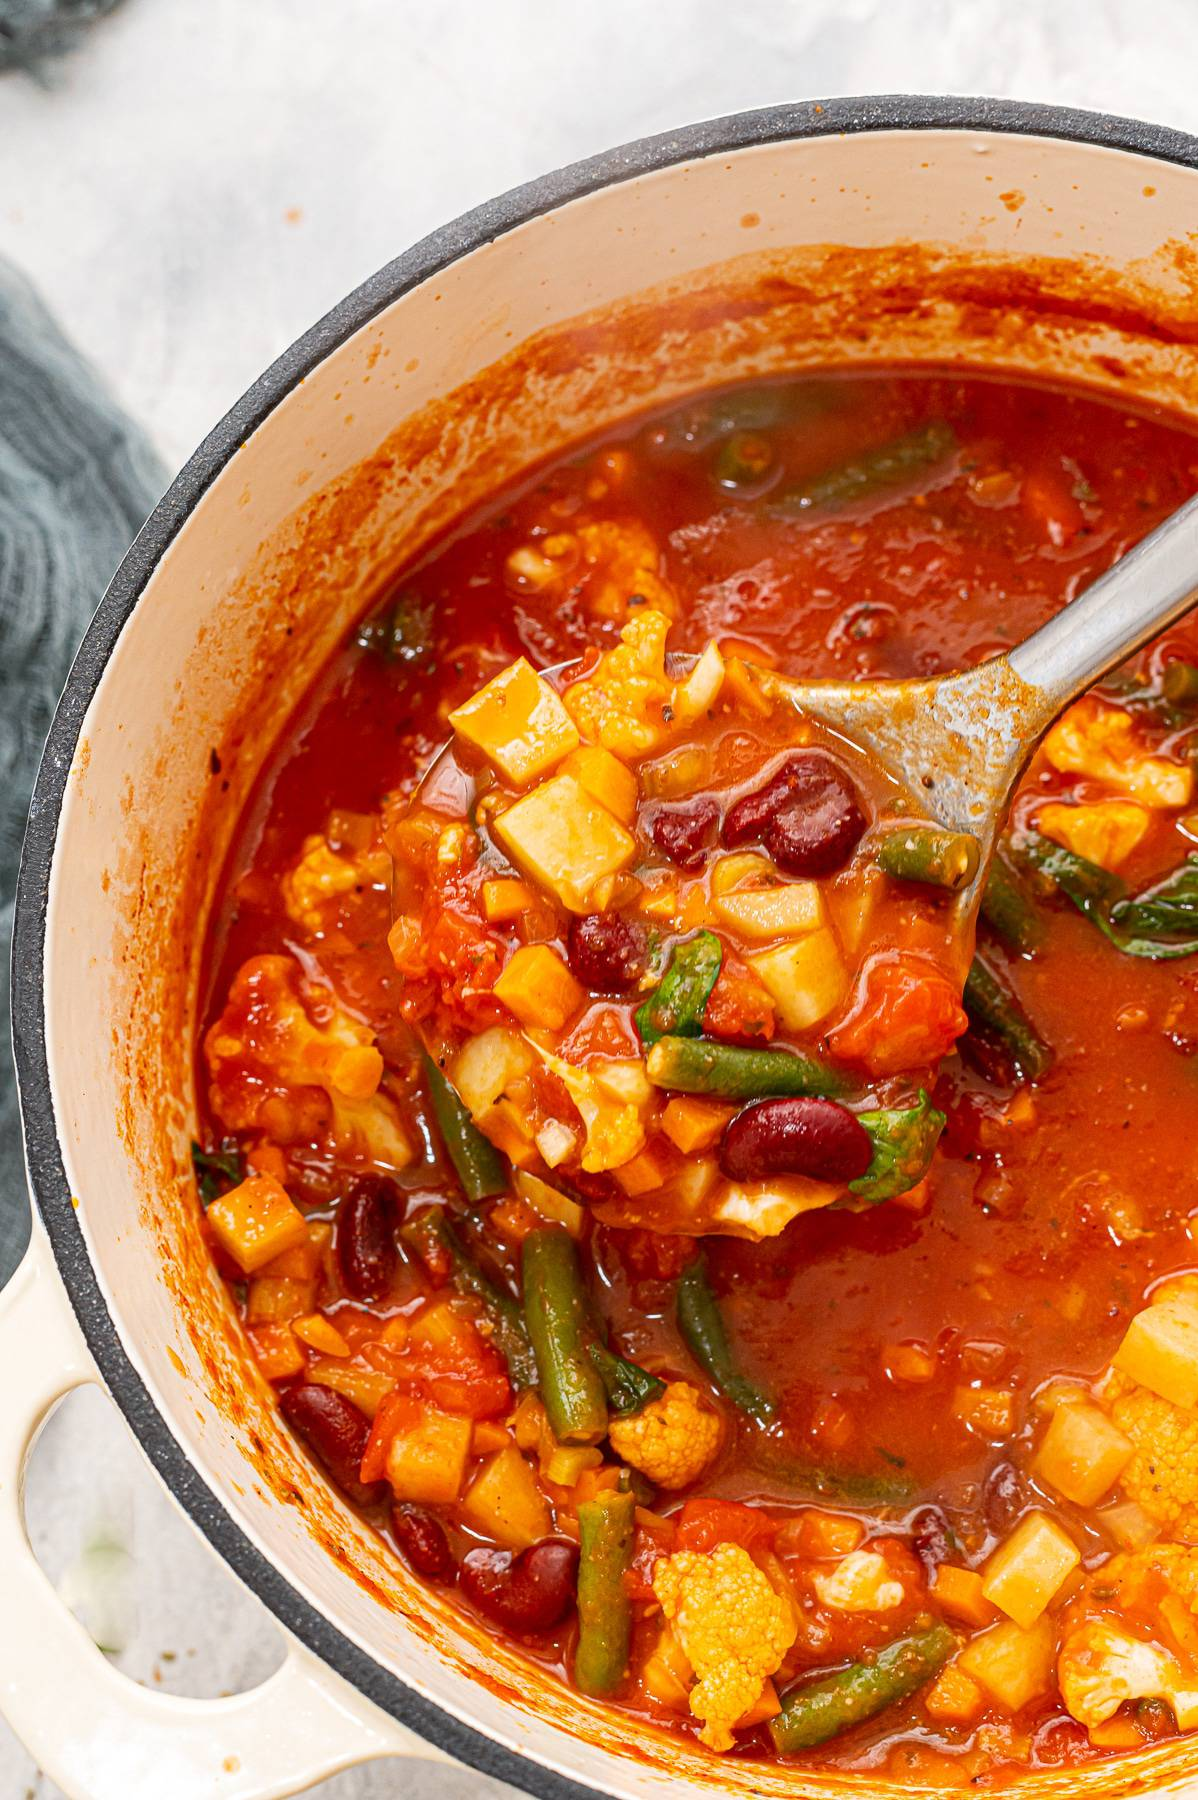 Rustic Tomato Soup with Veggies in a pot with a spoon in it.